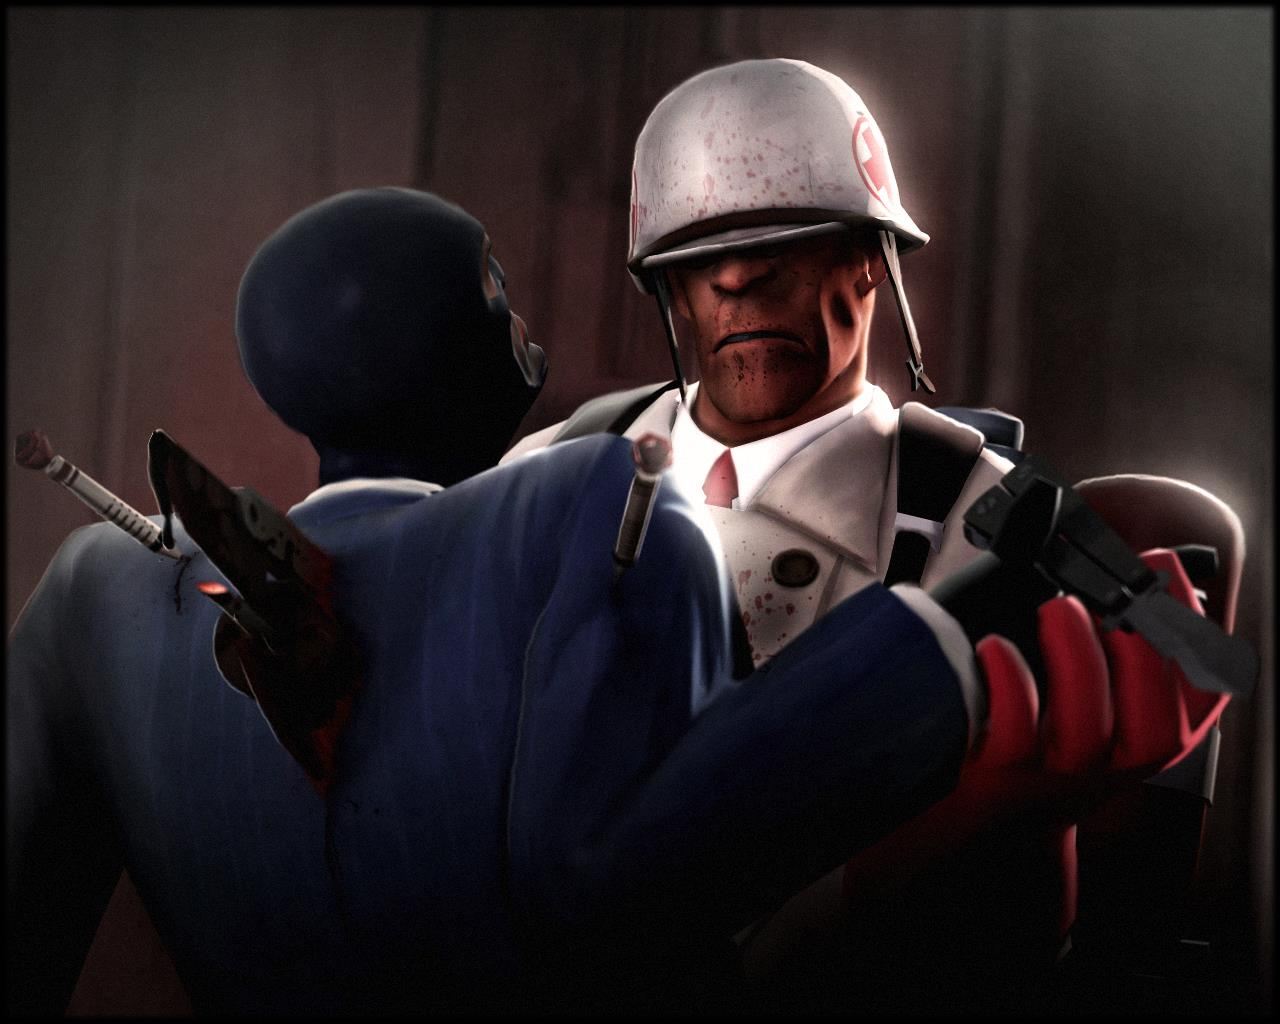 Medic Kills Spy Team Fortress 2 Know Your Meme